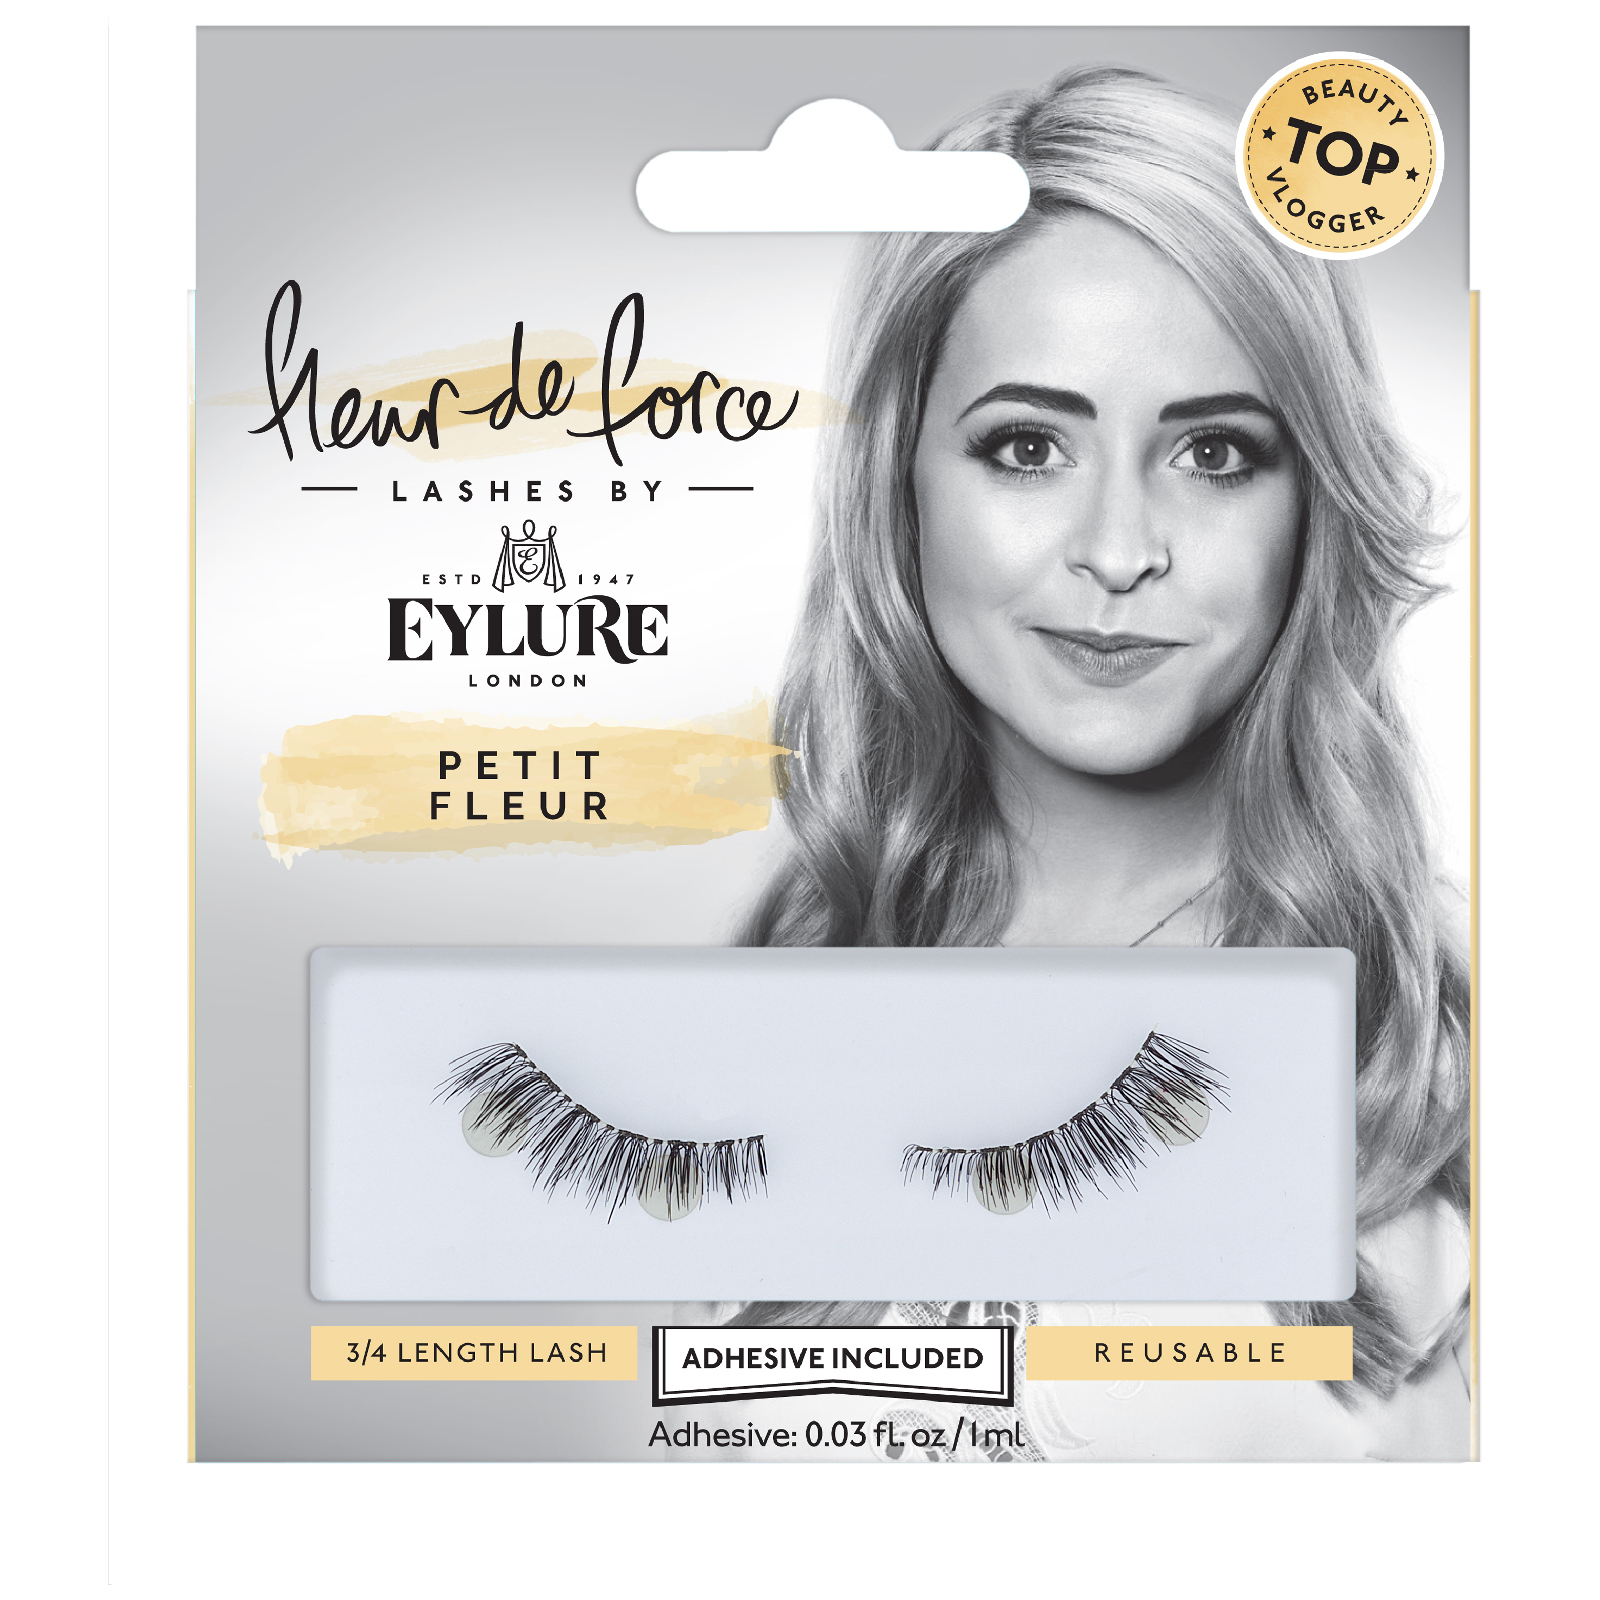 ed5e81a95b9 Fleur de Force By Eylure Lashes - Petite Fleur | Free Shipping |  Lookfantastic